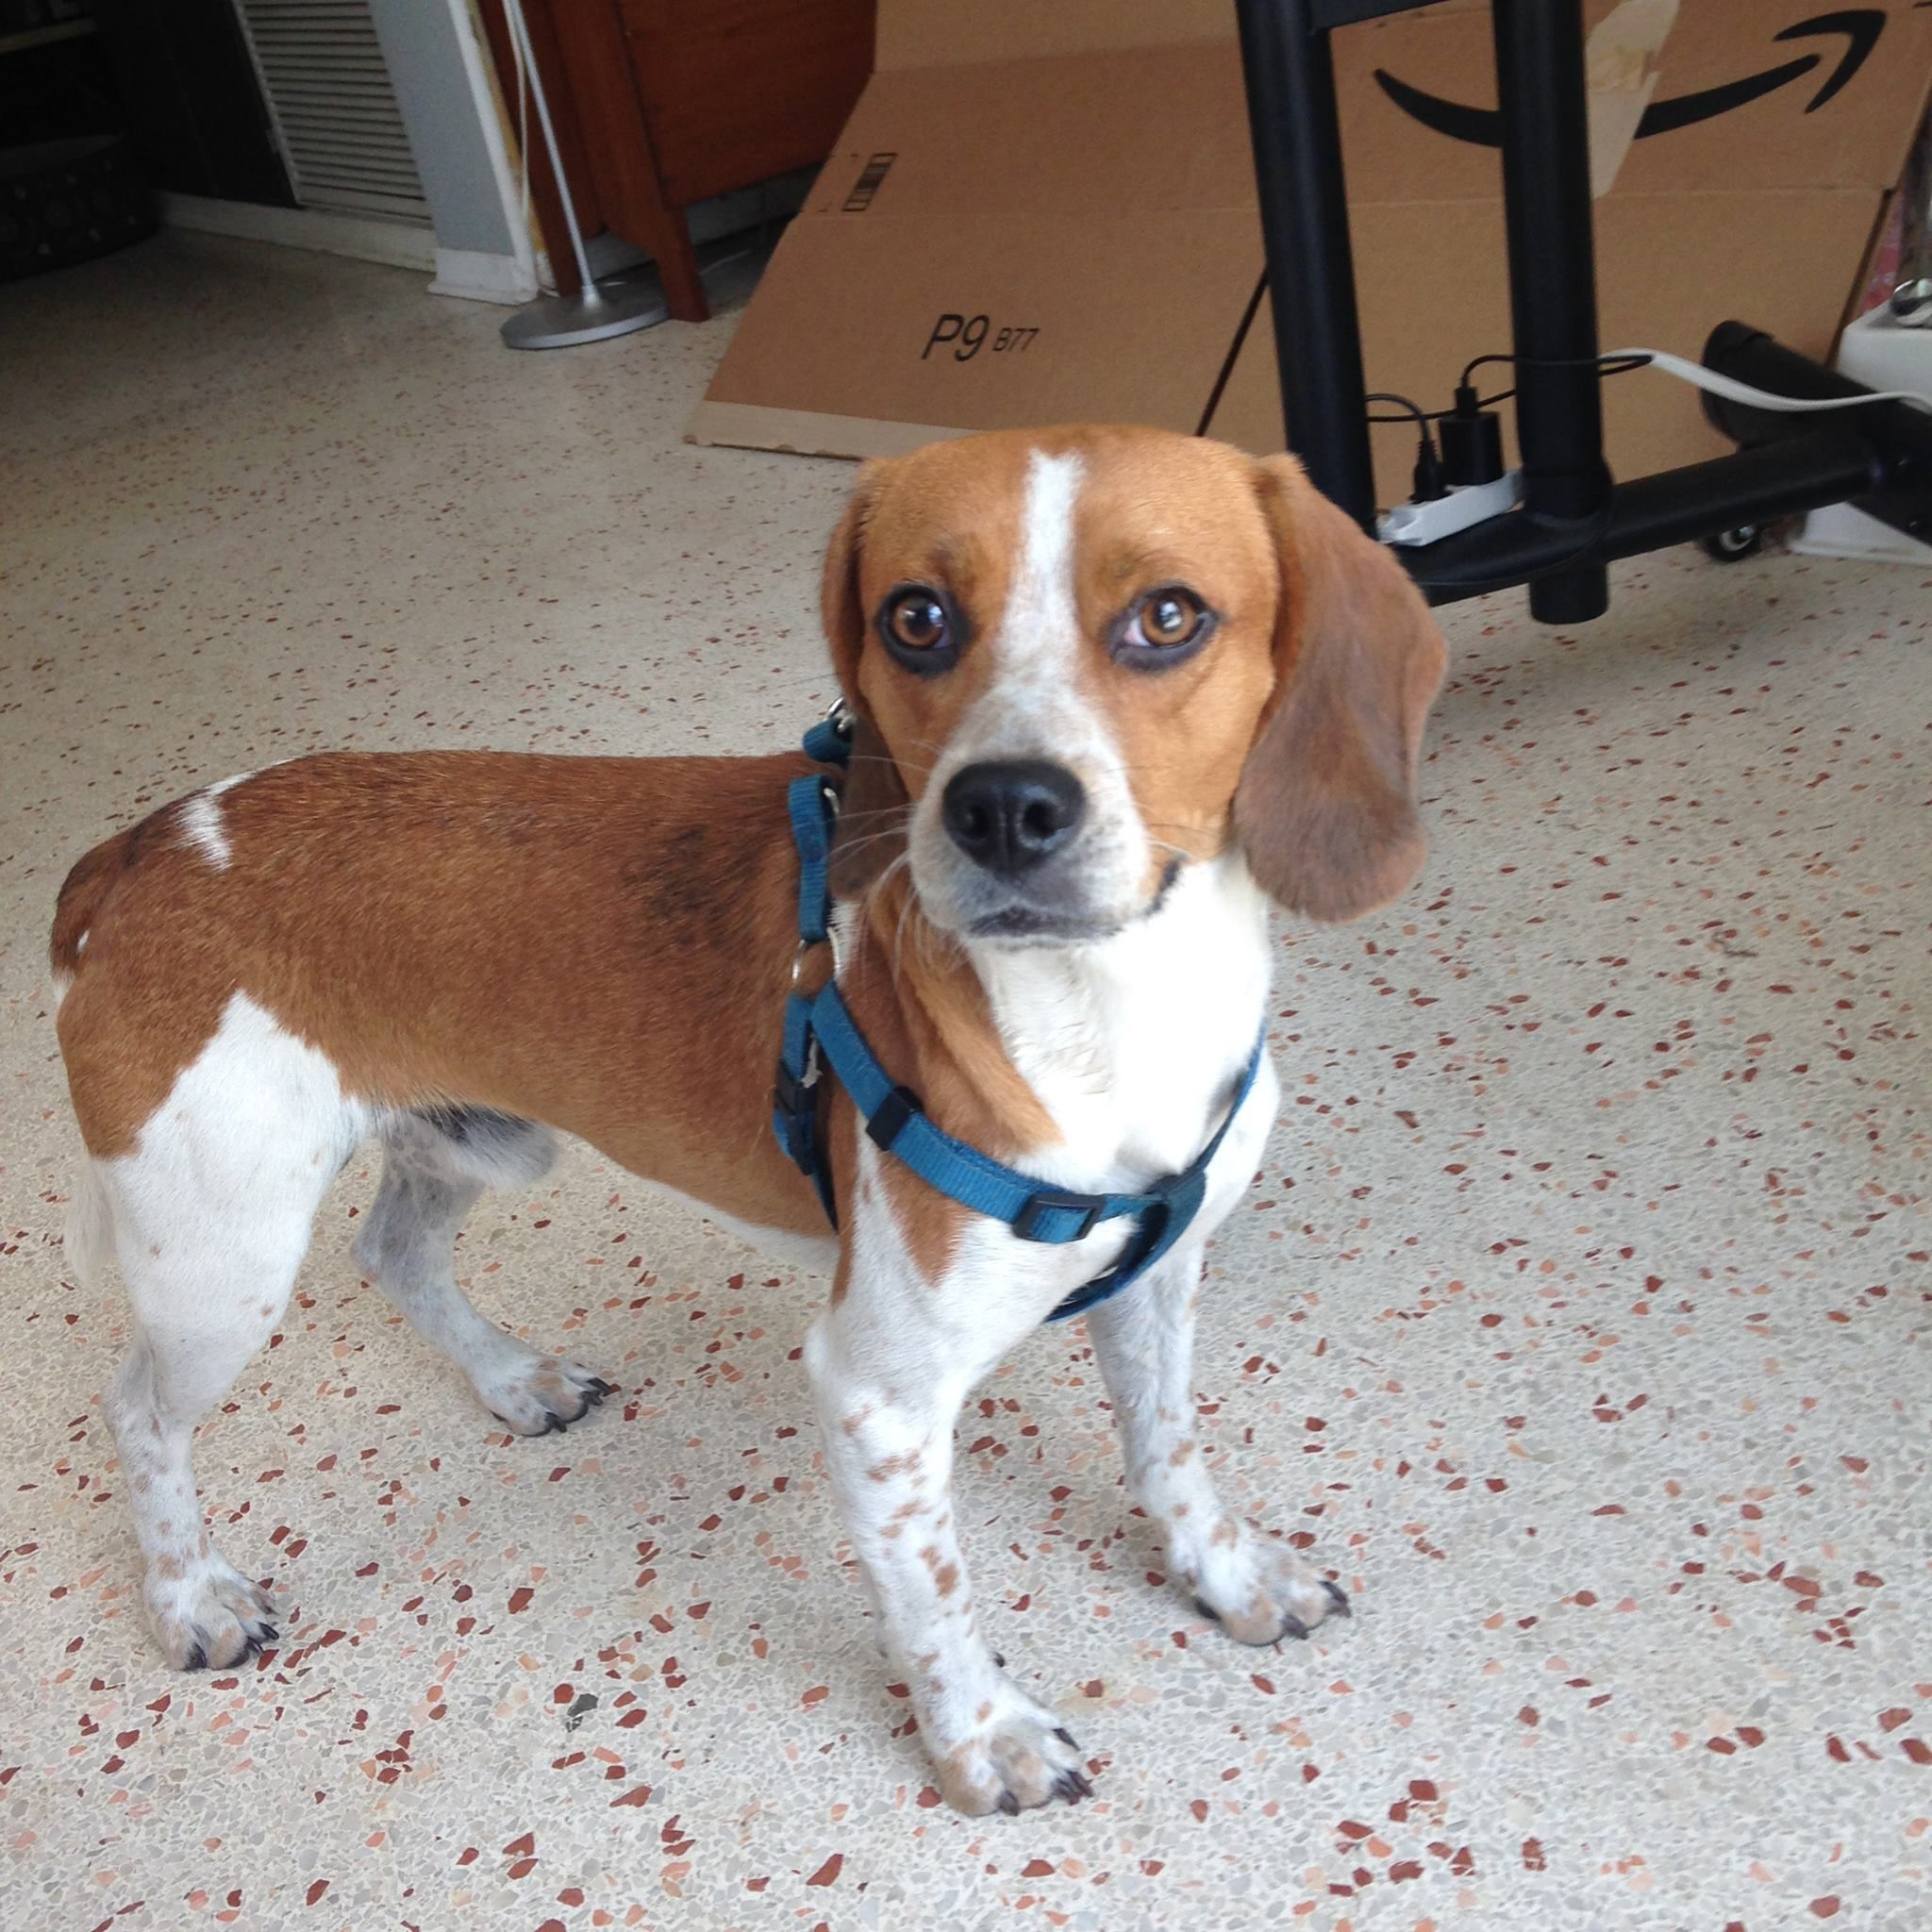 Beagle dog for Adoption in Tampa, FL. ADN542433 on